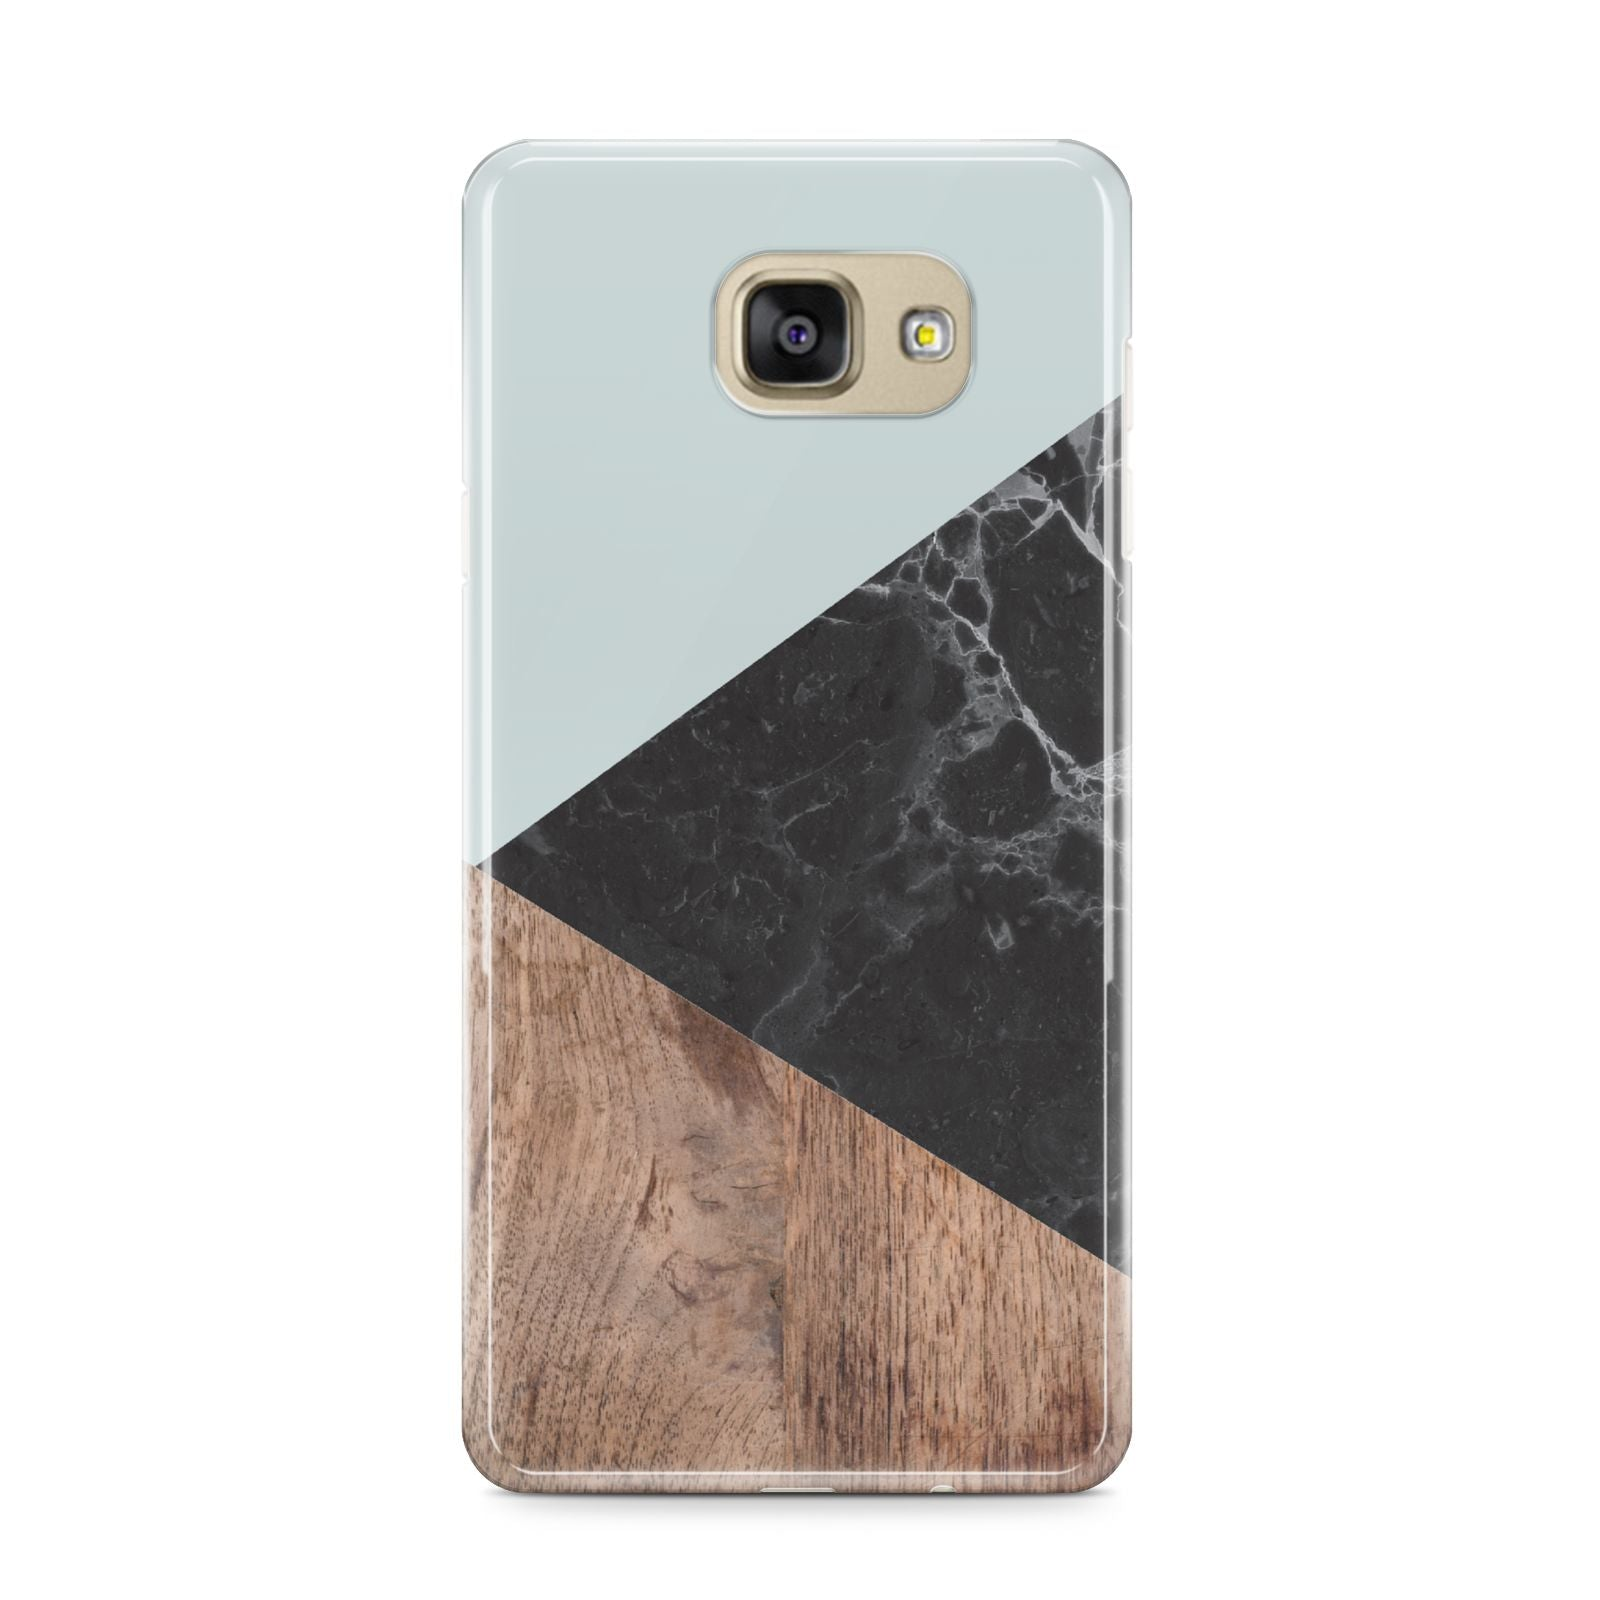 Marble Wood Geometric 2 Samsung Galaxy A9 2016 Case on gold phone